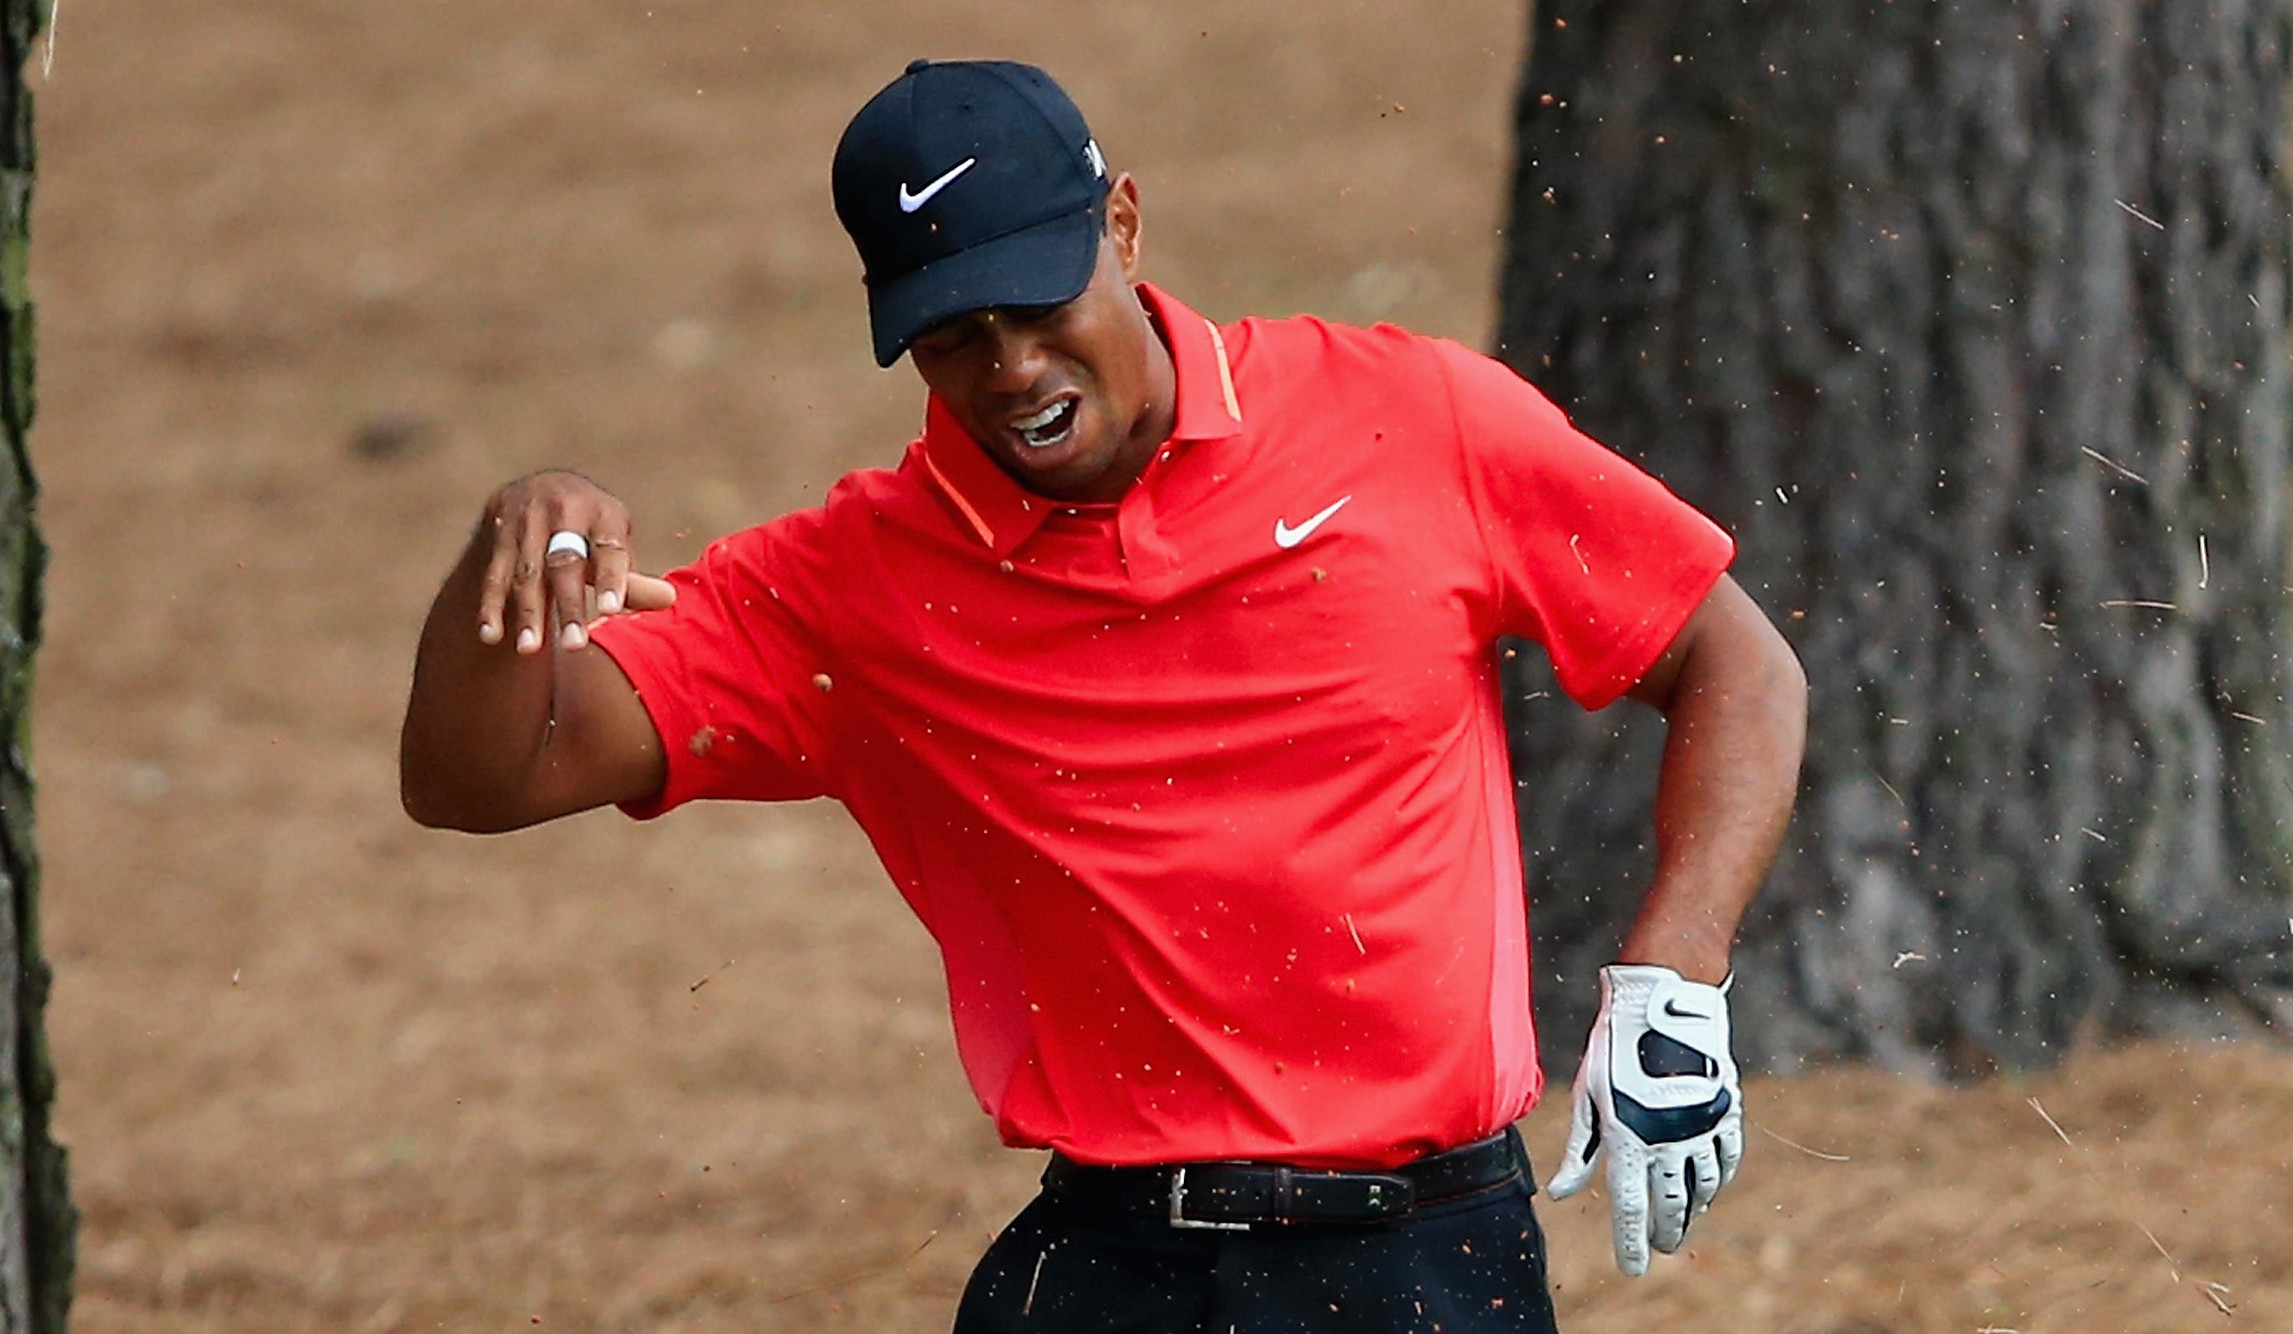 Tiger Woods tosses his club after hitting a tree root on a shot Sunday. (Getty)